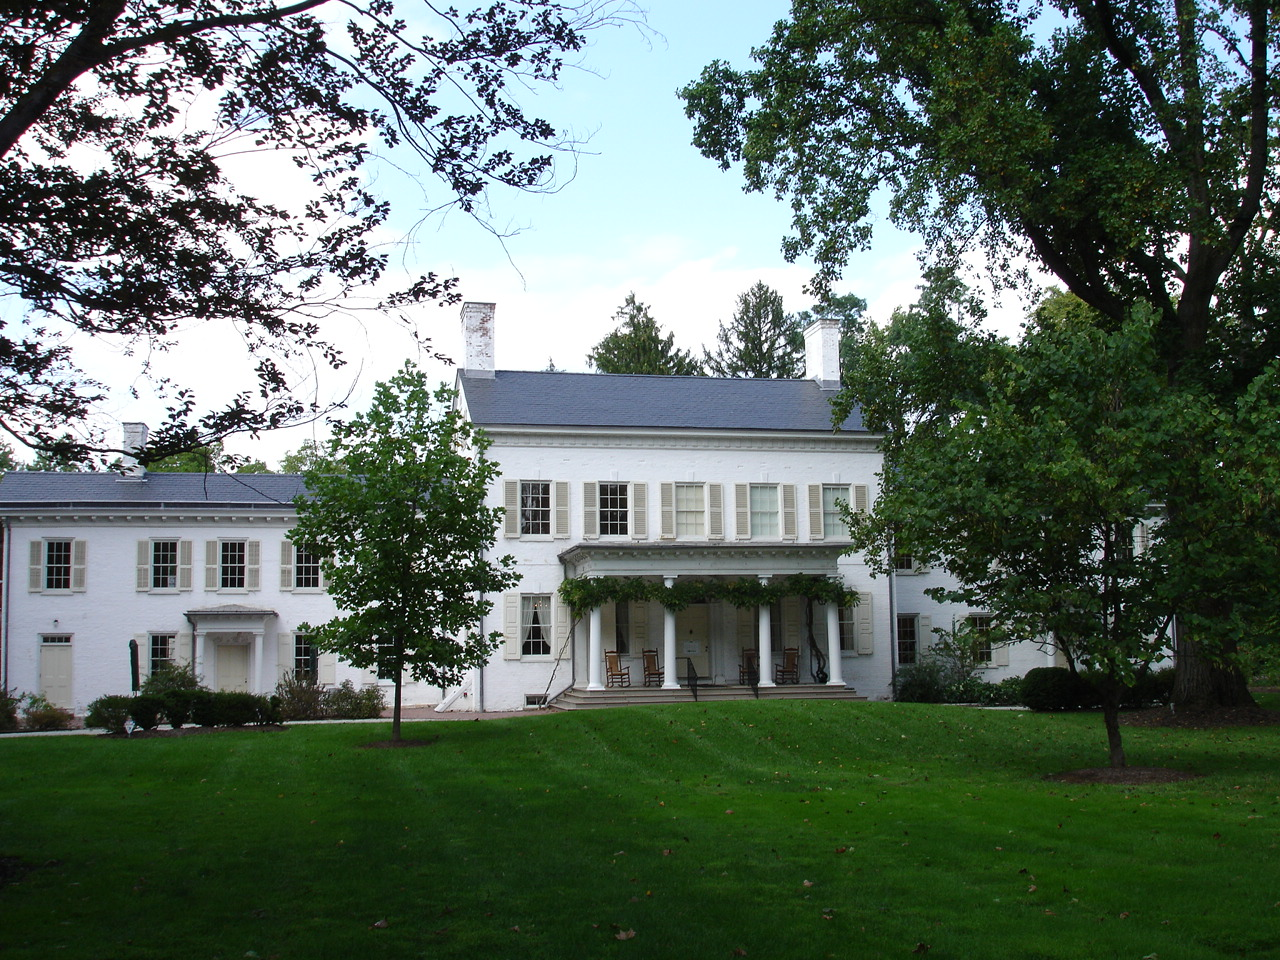 Morven Museum and Garden was once the home of Richard Stockton, lawyer and signer of the Declaration of Independence.